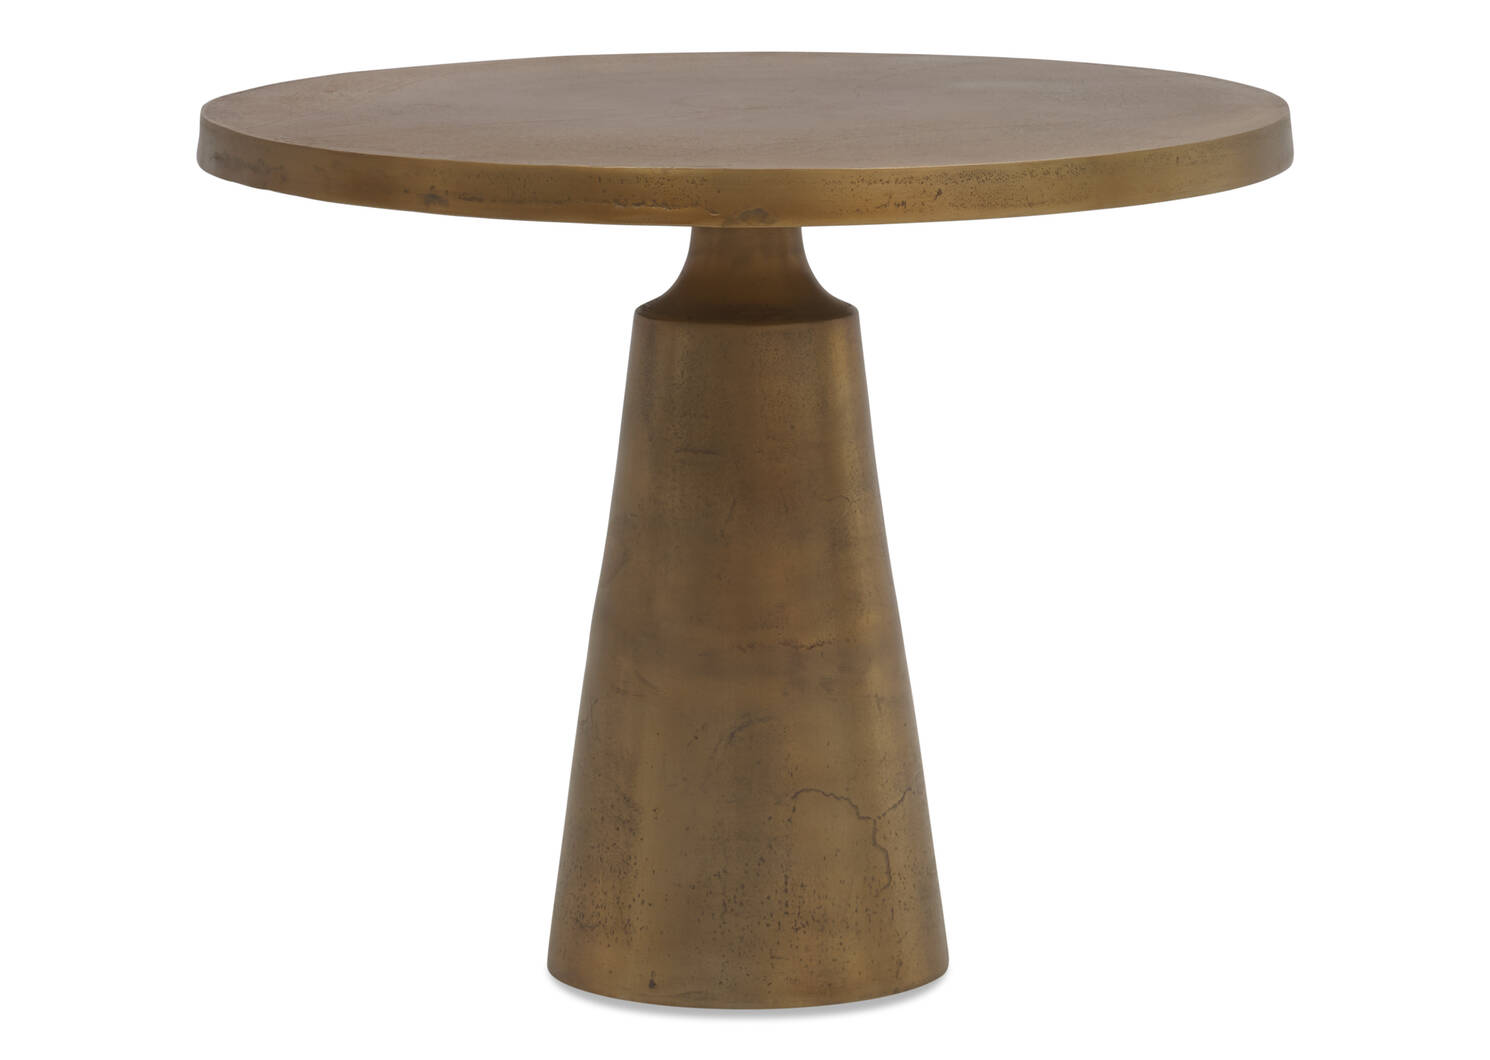 Table d'appoint Gershwin 24 po -laiton